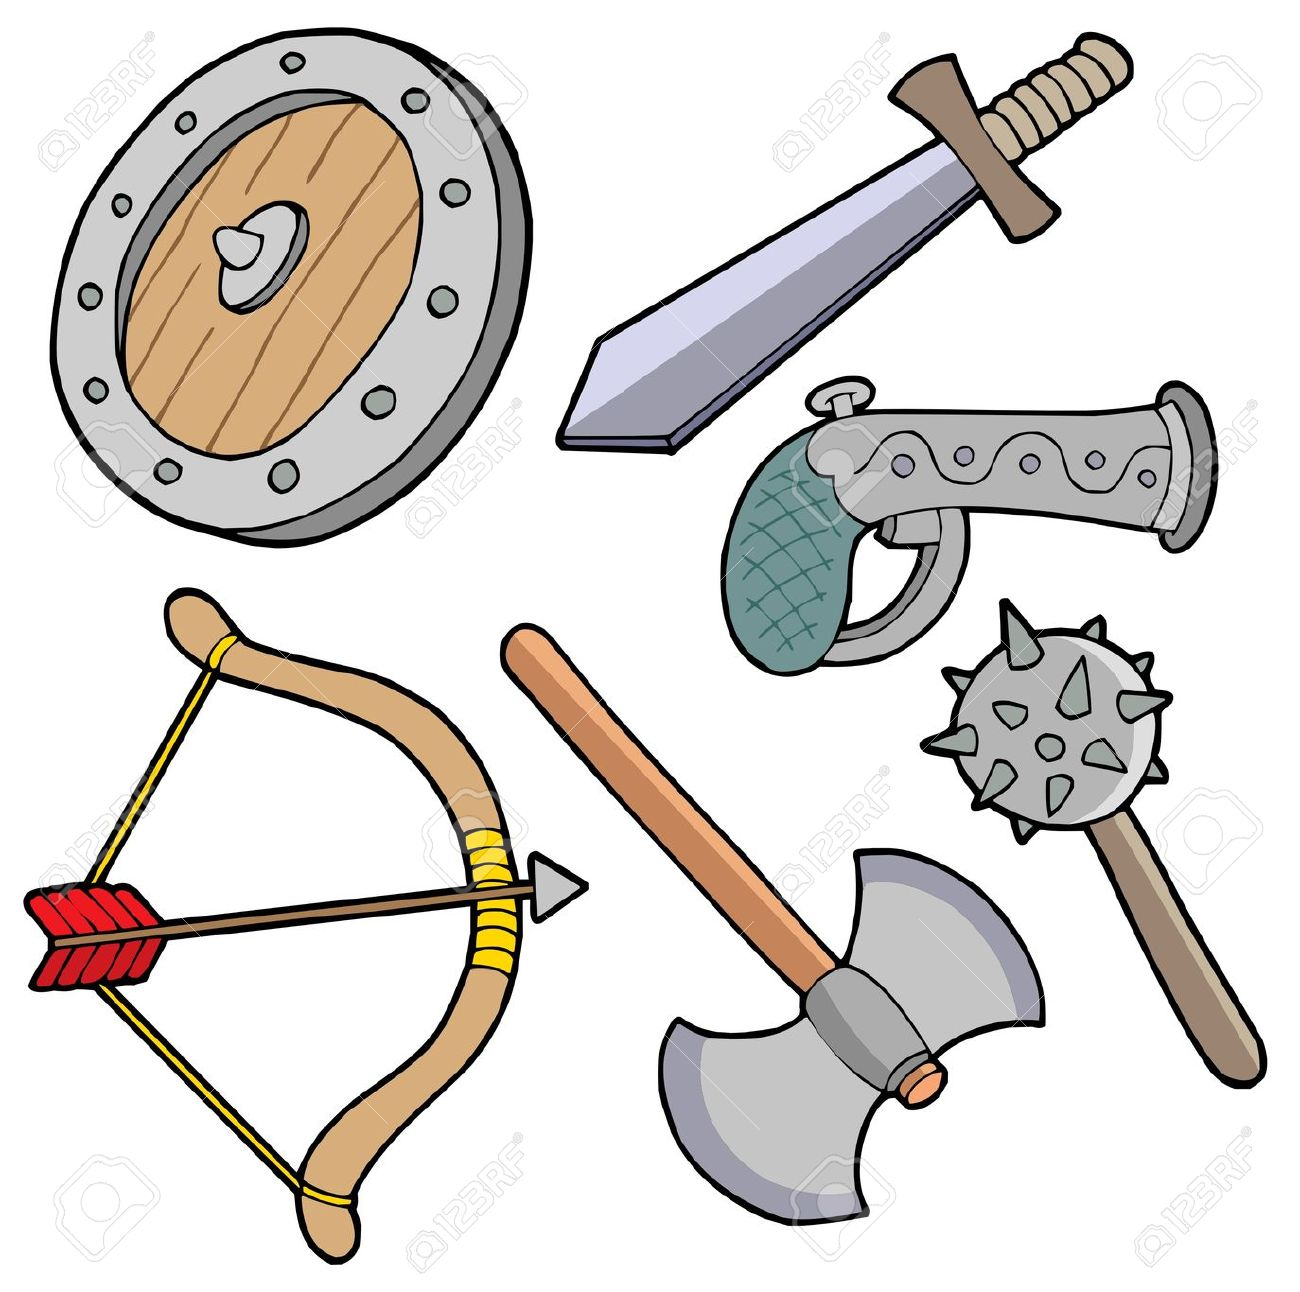 Weapons Clipart & Look At Clip Art Images.